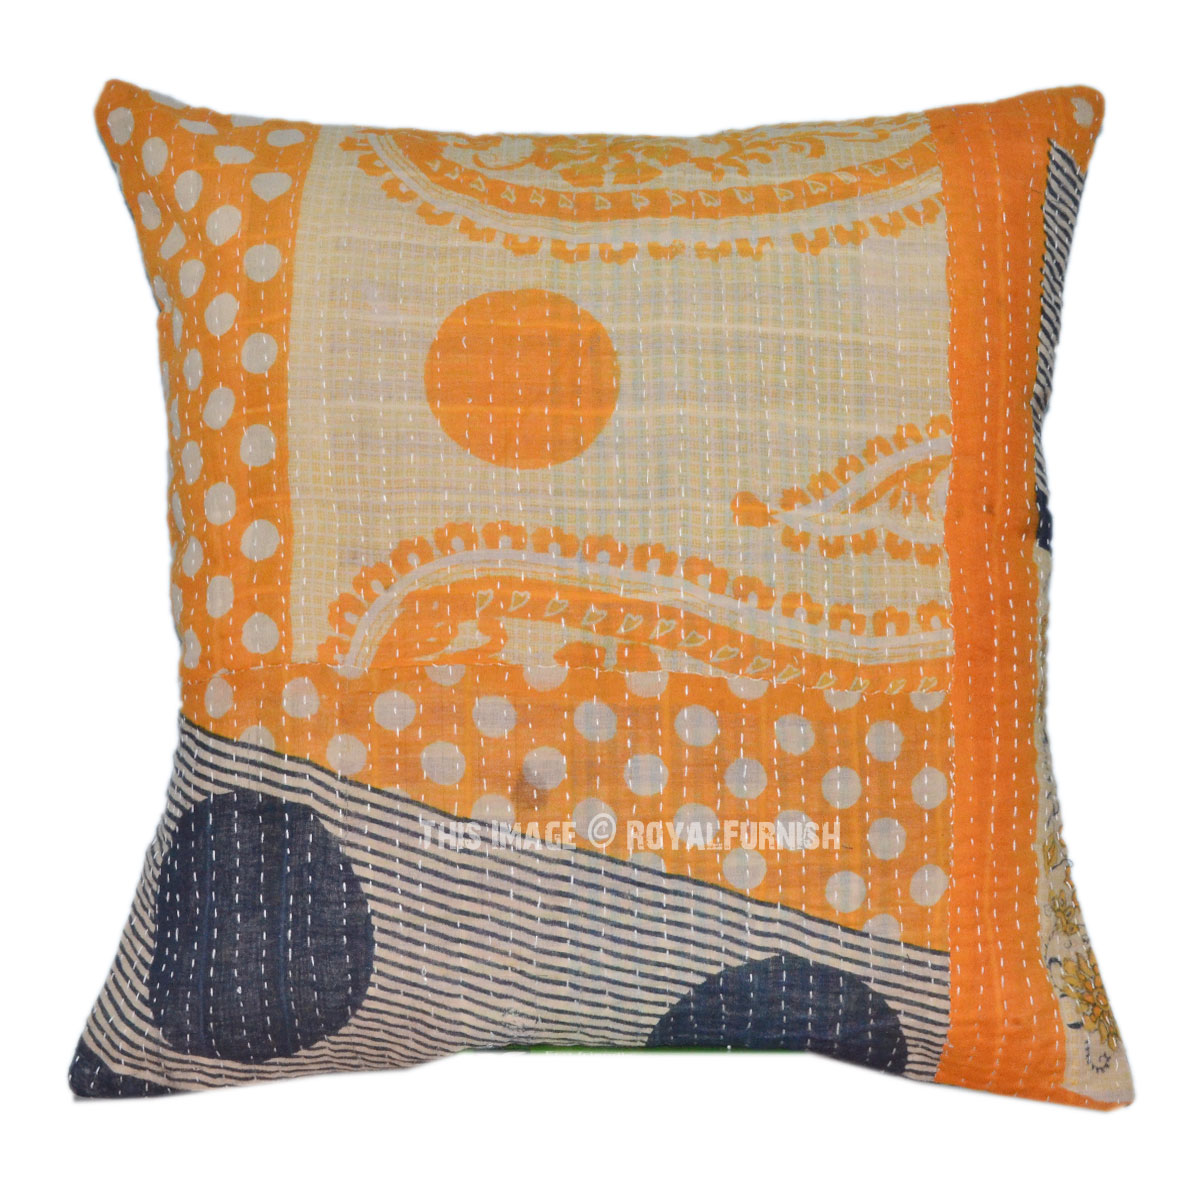 Decorative Amp Accent Indian Kantha Throw Pillow Cover